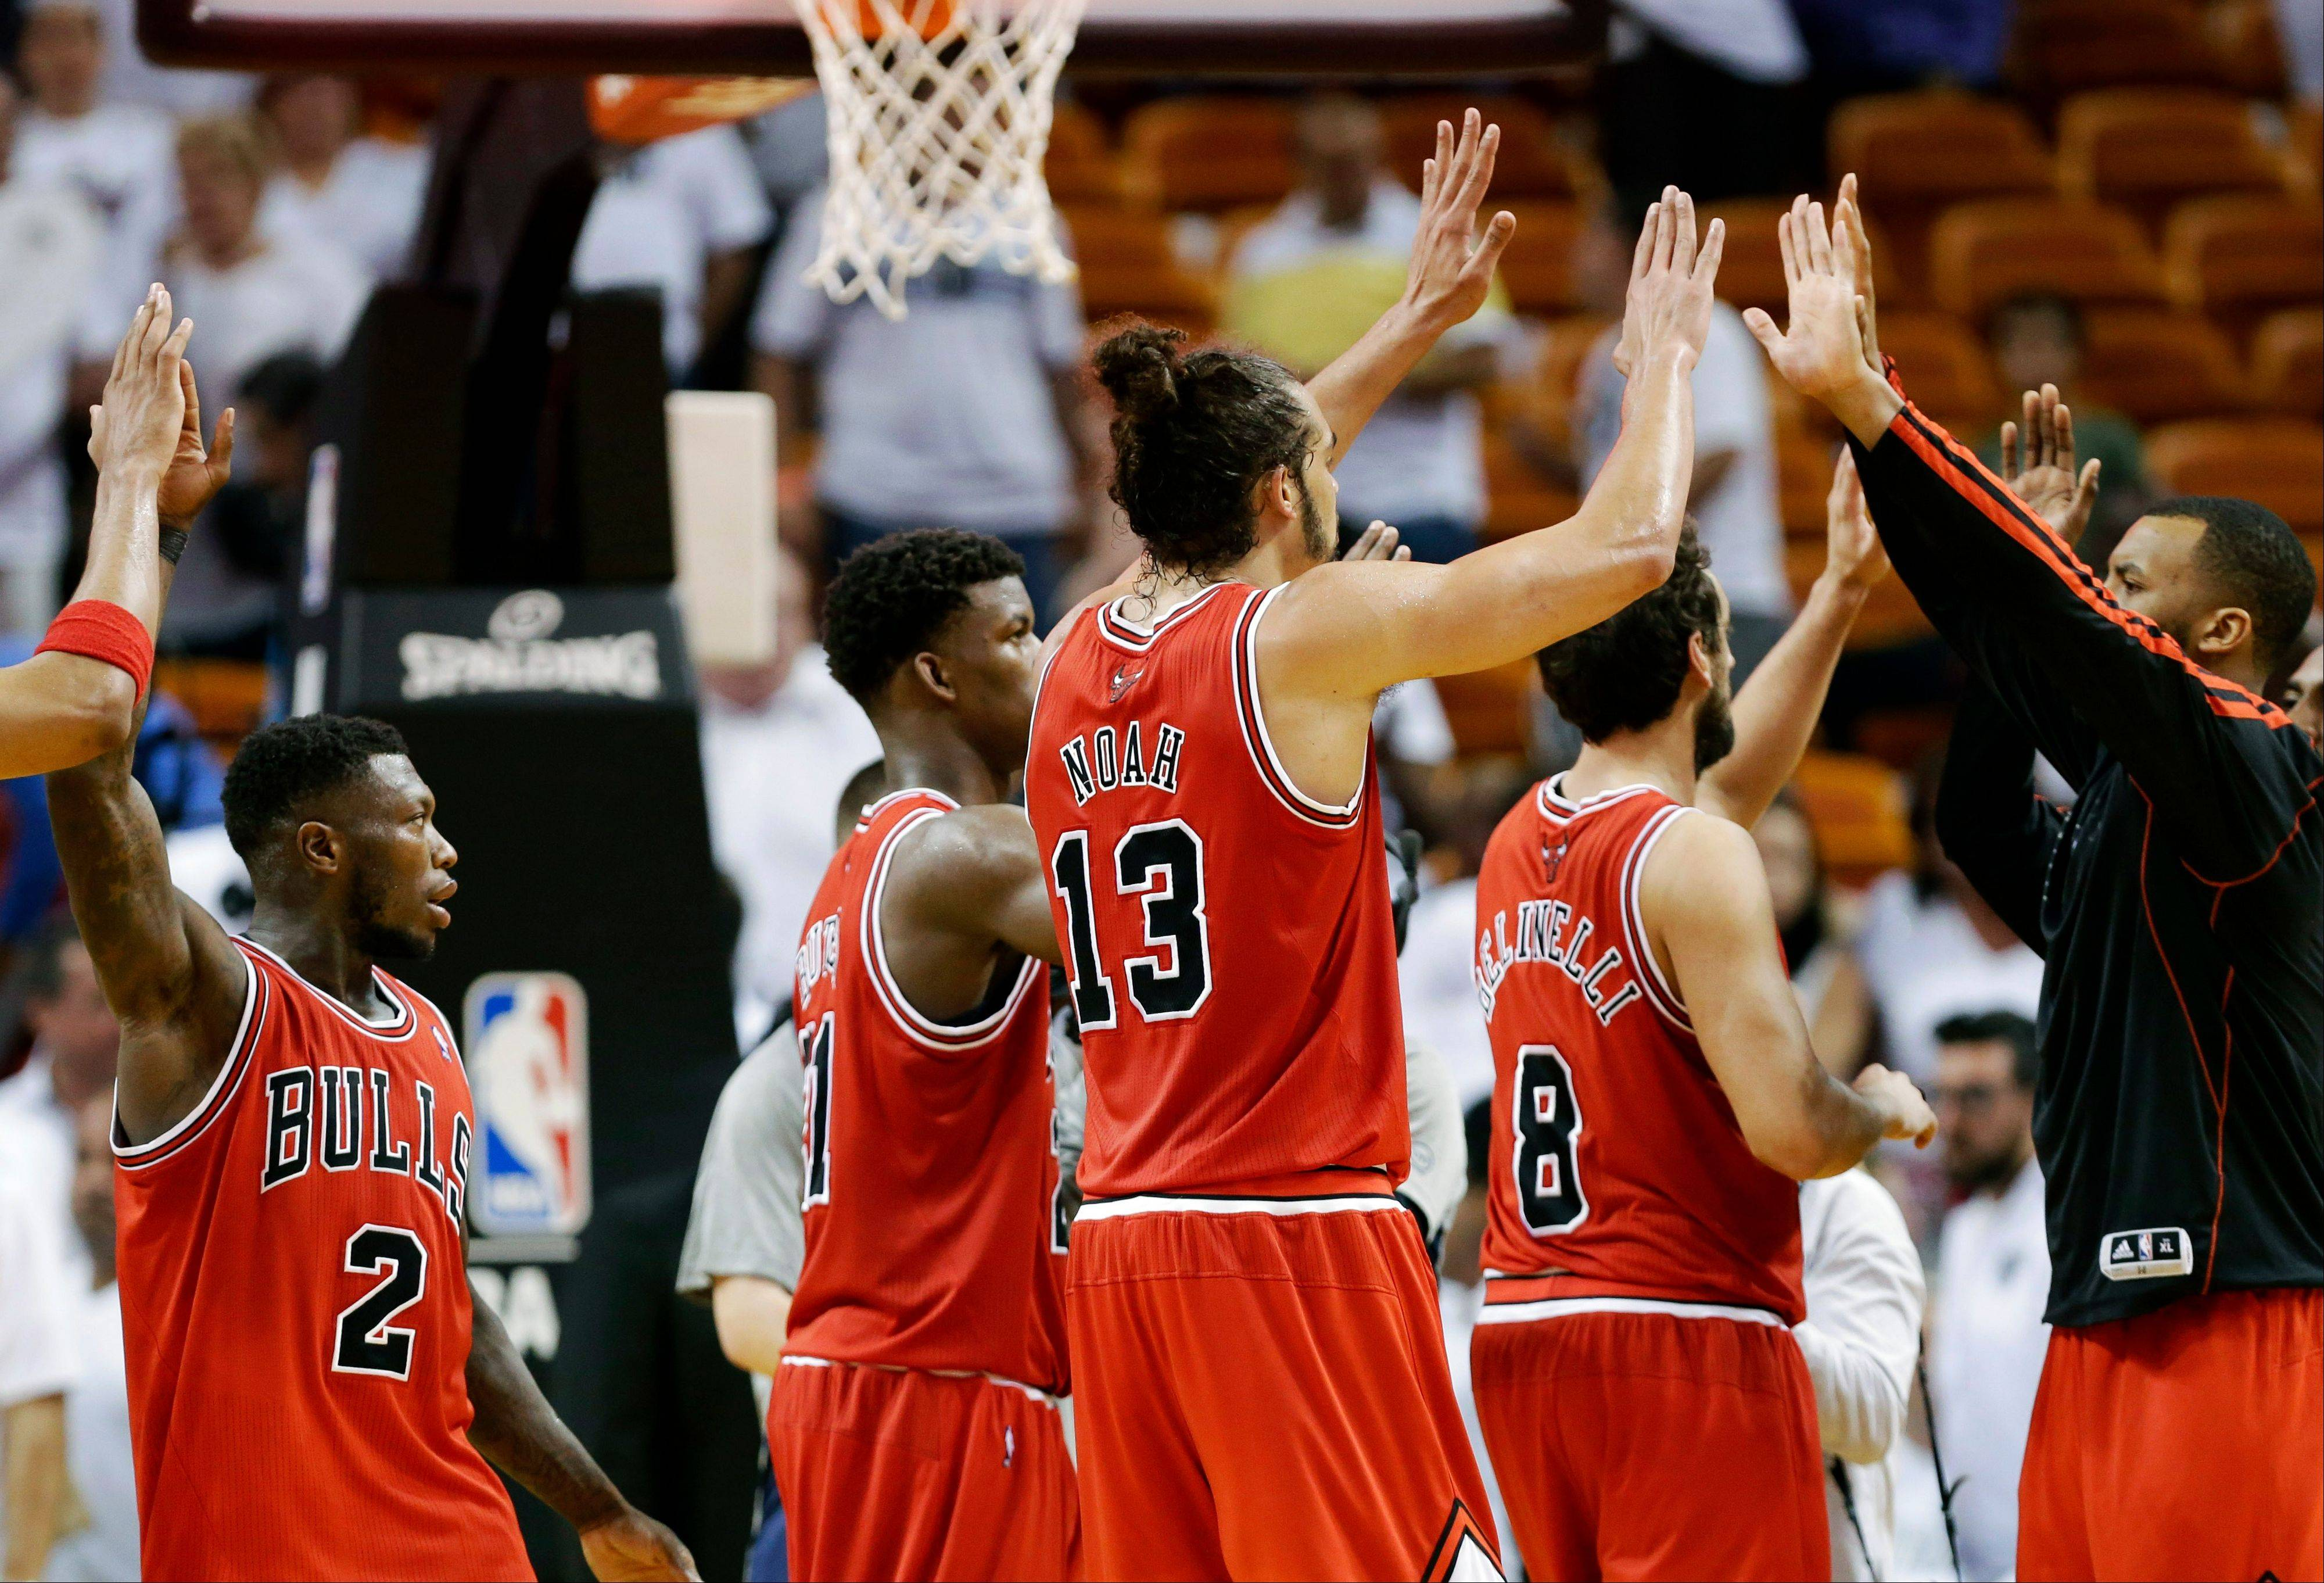 Nate Robinson and Joakim Noah celebrate with their Bulls teammates after defeating the Miami Heat 93-86 in Game 1 Monday.